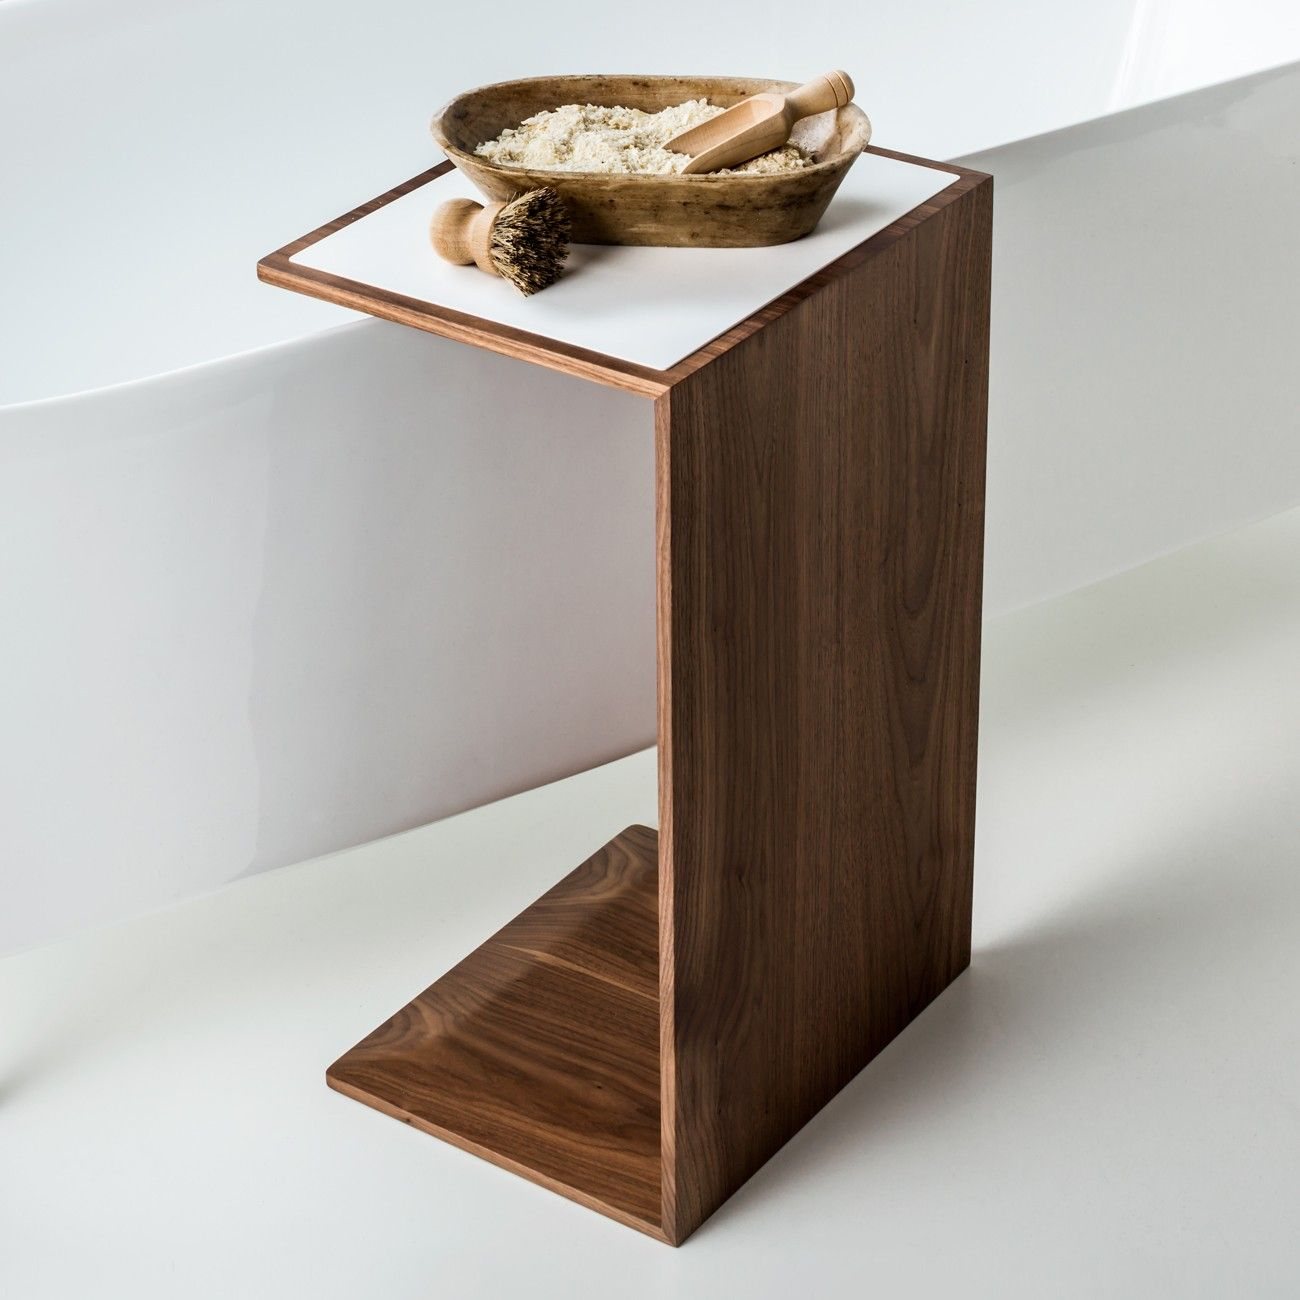 Awesome side table with c shaped design made of solid walnut awesome side table with c shaped design made of solid walnut geotapseo Choice Image